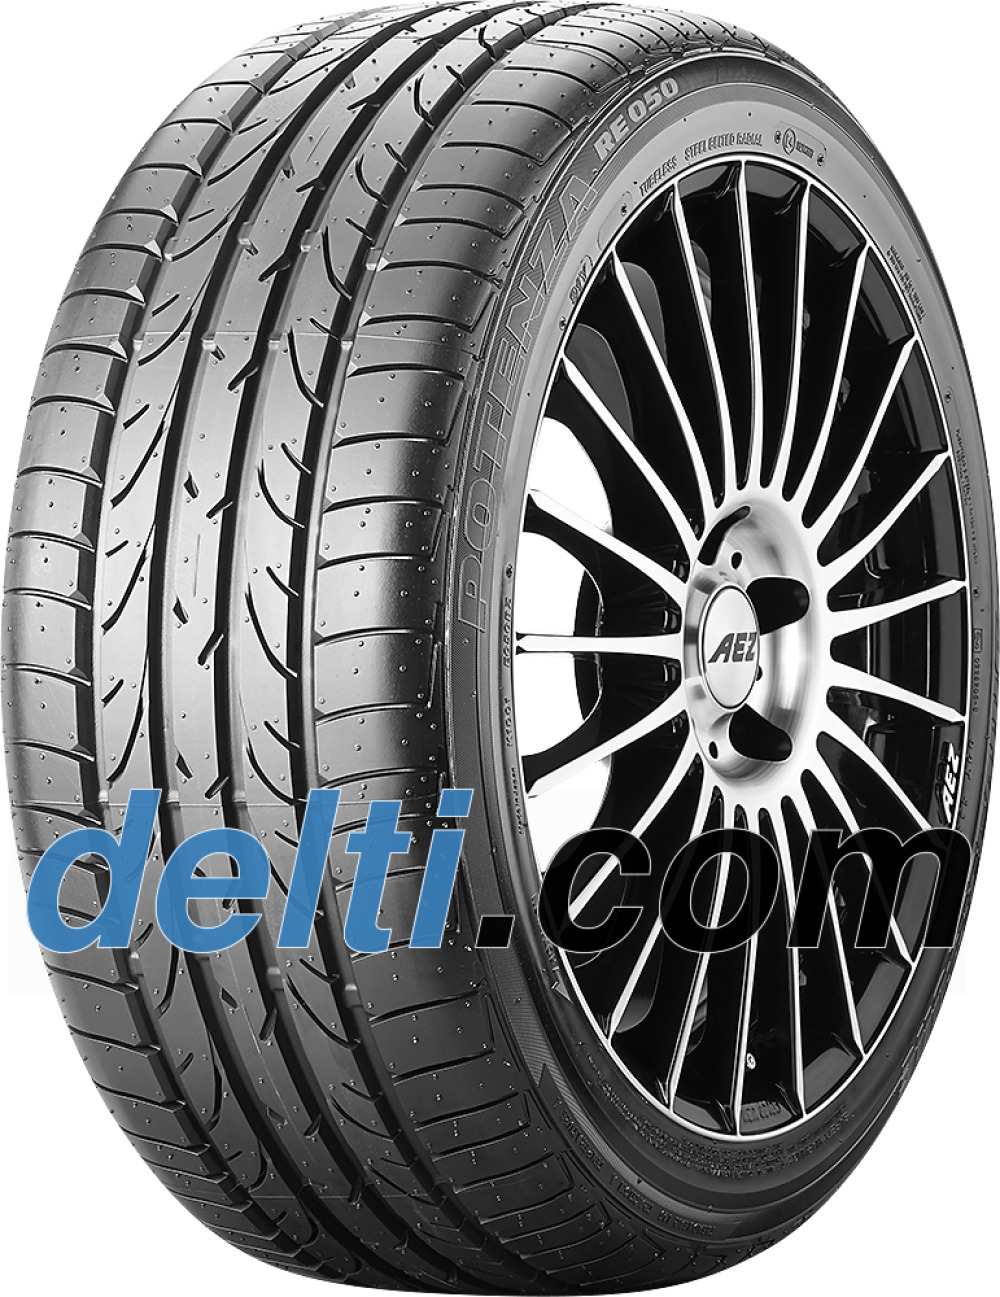 Bridgestone Potenza RE 050 EXT ( 215/45 R17 87V runflat, MOE, with rim protection (MFS) )